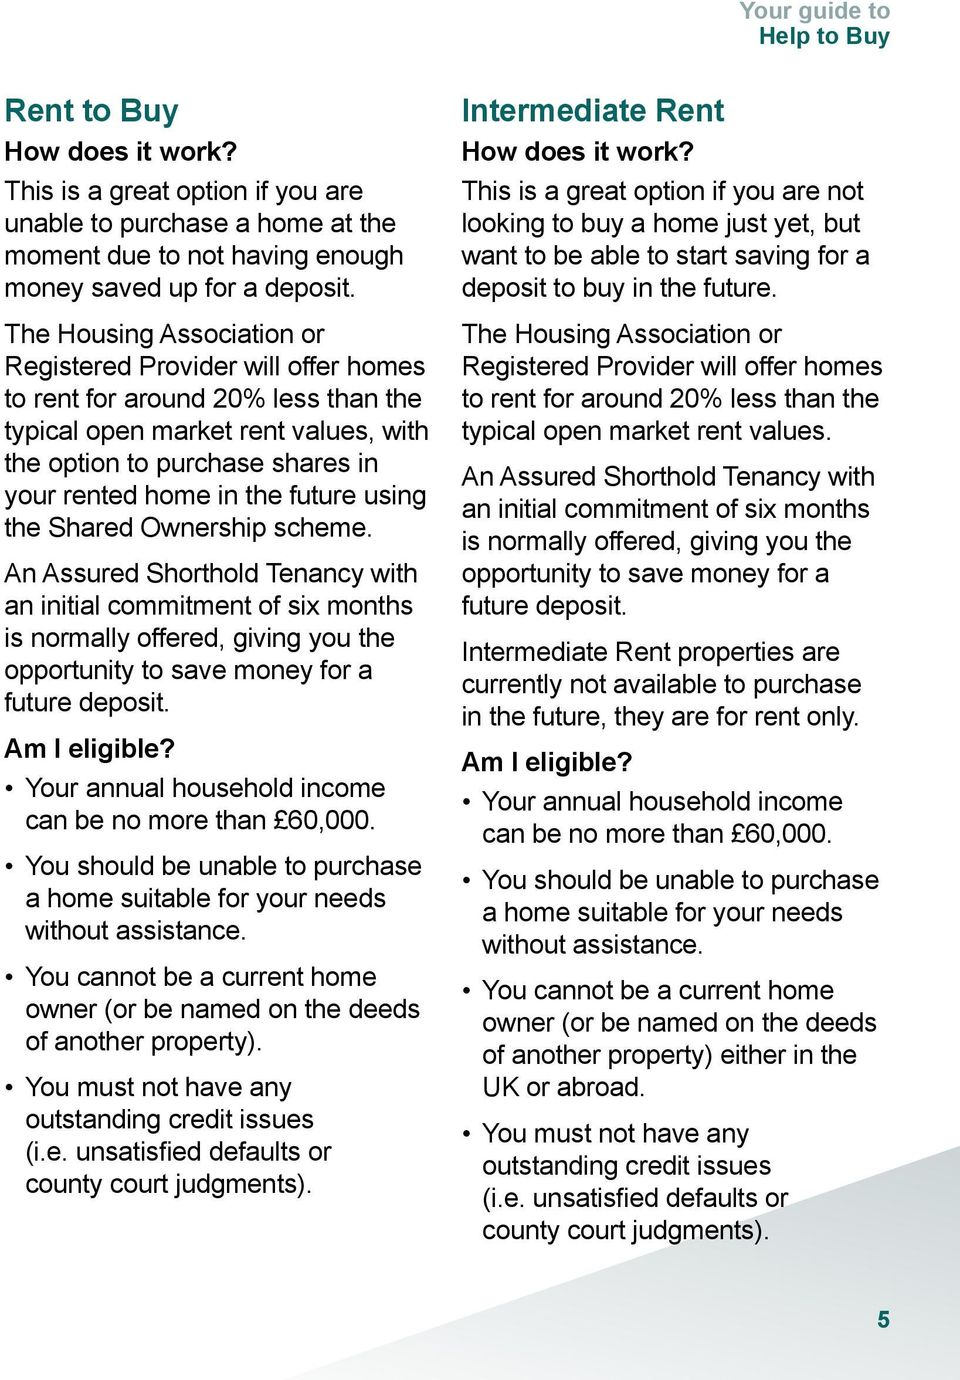 future using the Shared Ownership scheme. An Assured Shorthold Tenancy with an initial commitment of six months is normally offered, giving you the opportunity to save money for a future deposit.